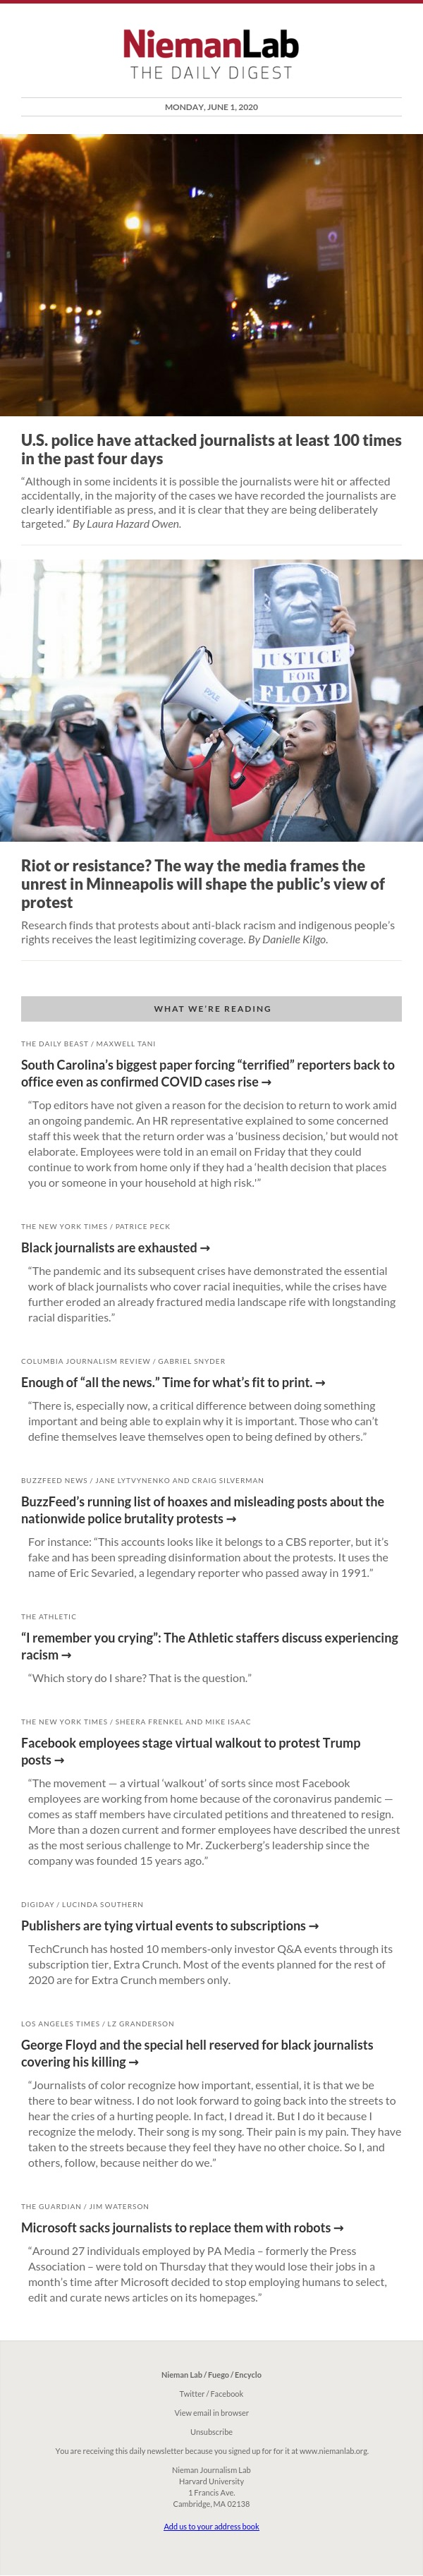 U.S. police have attacked journalists at least 100 times in the past four days